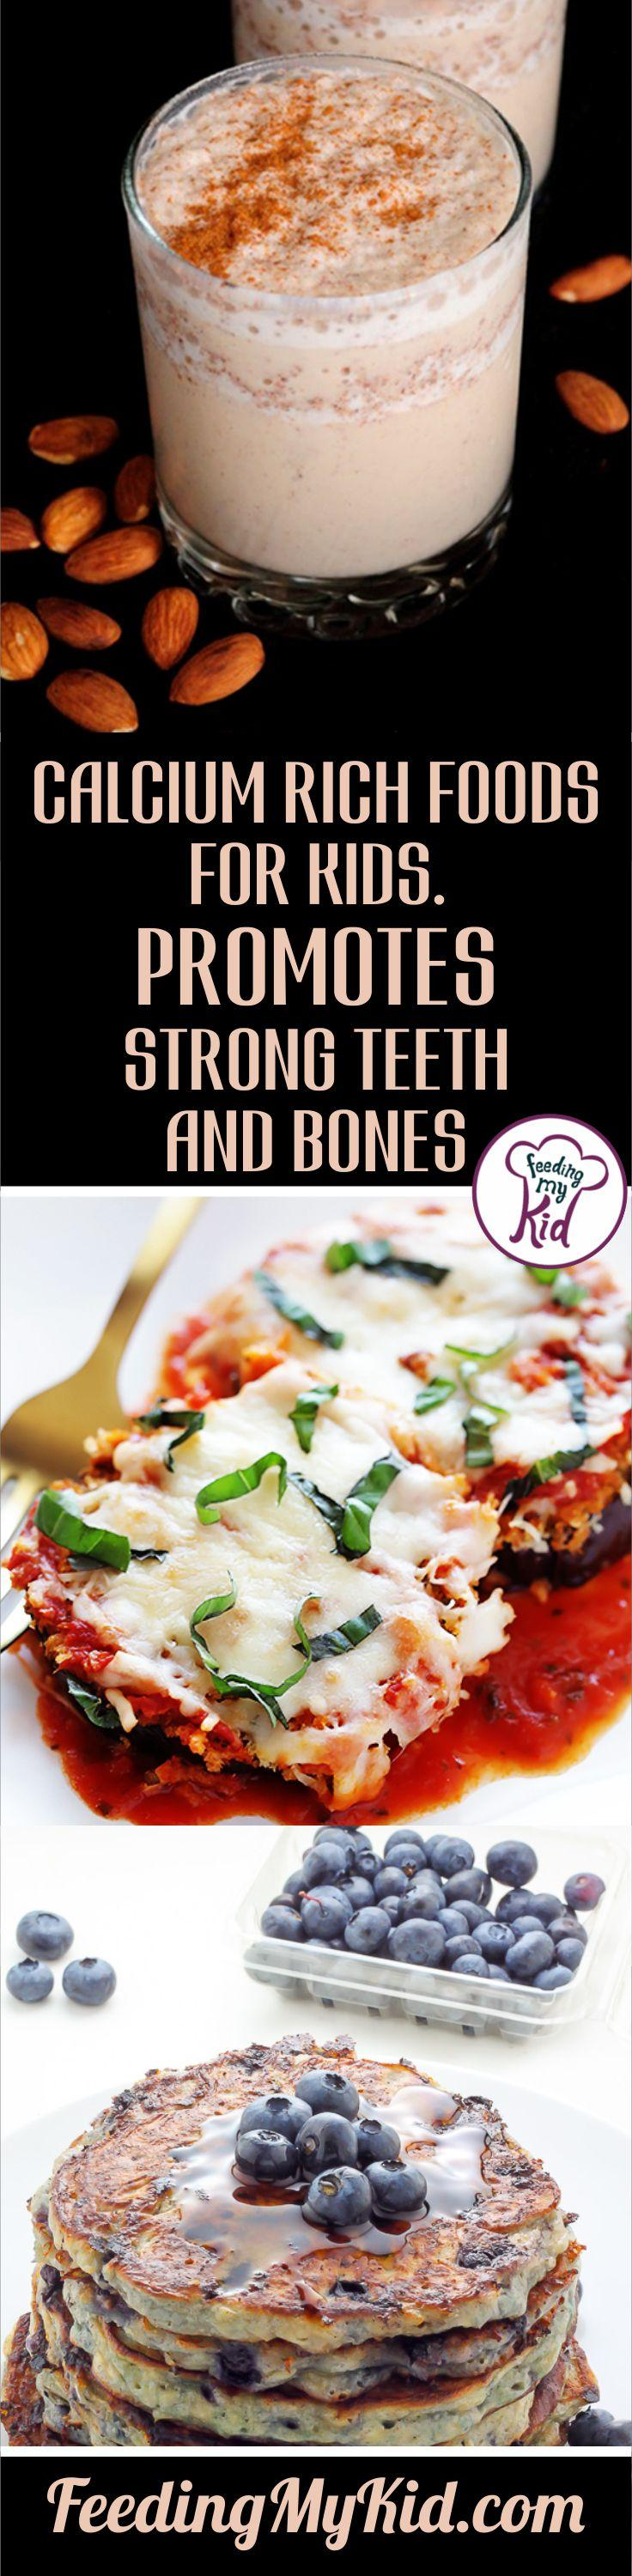 Calcium rich foods promote healthy teeth and strong bones calcium rich foods help promote strong teeth and bones for your kids check out these forumfinder Gallery